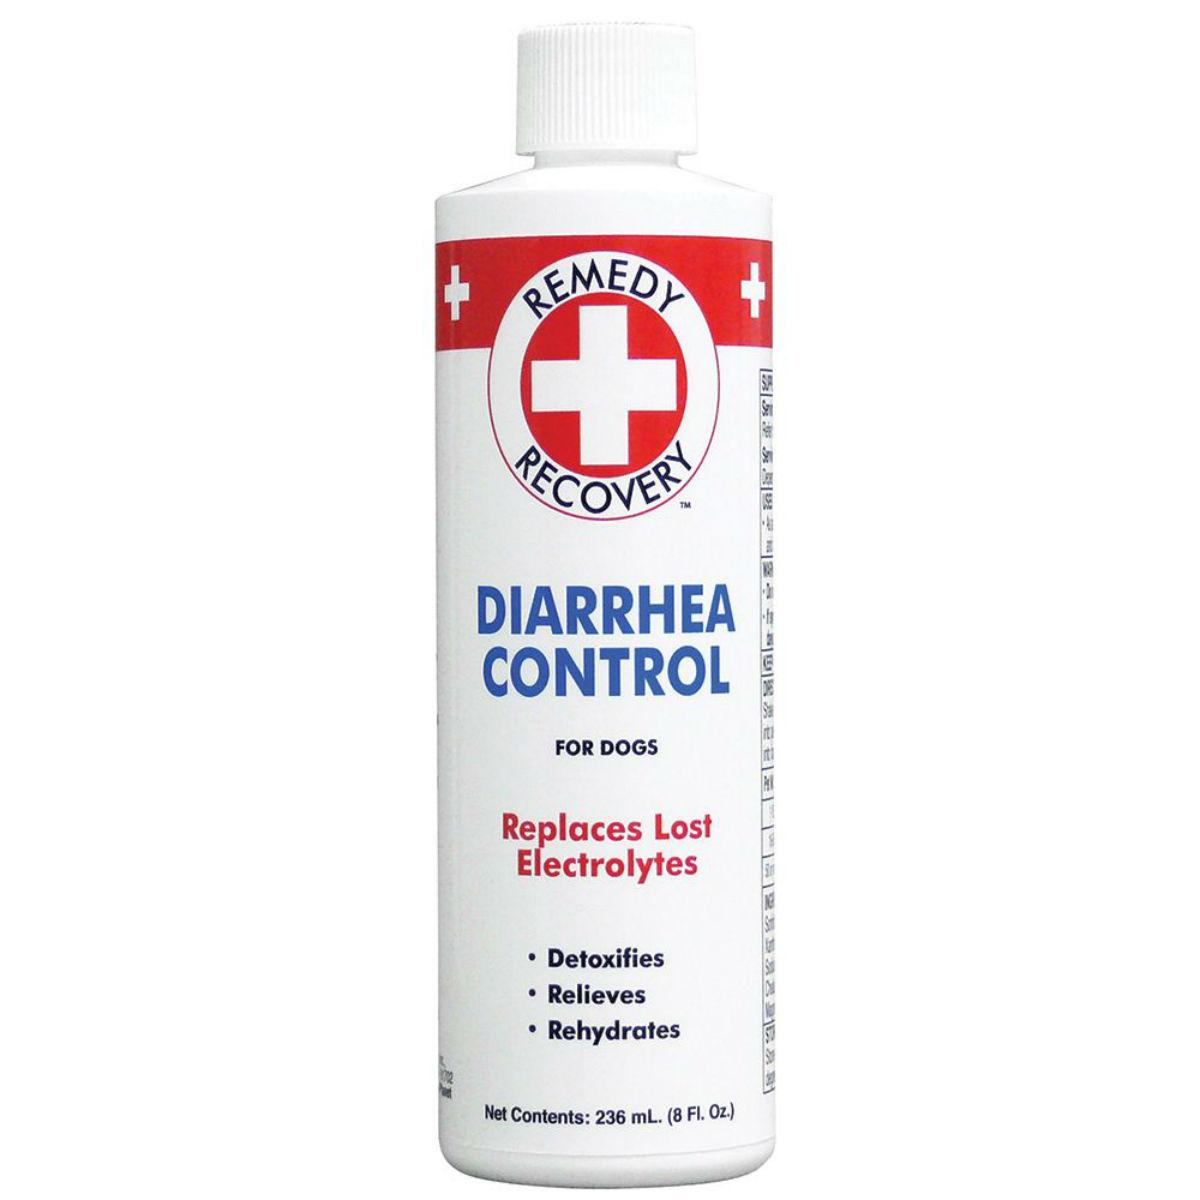 Remedy + Recovery Diarrhea Control For Dogs